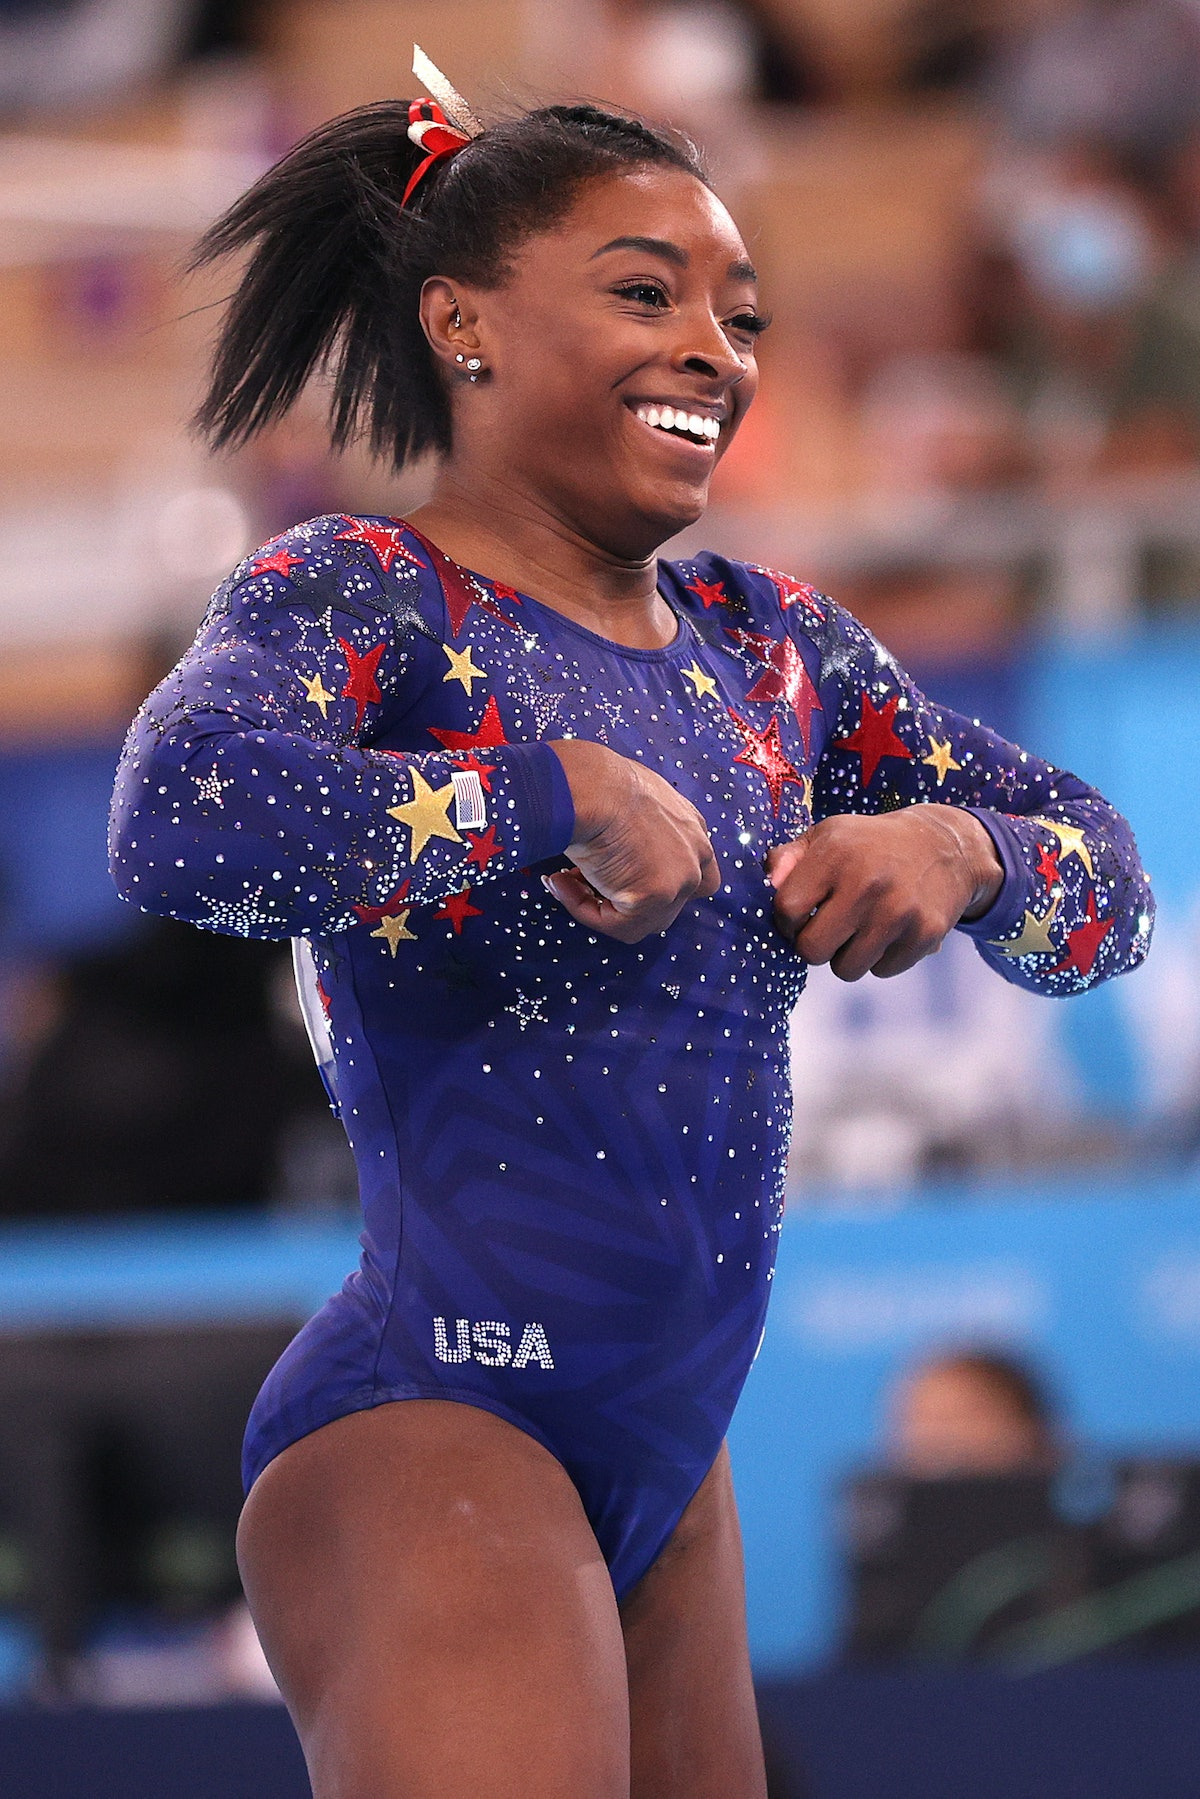 TOKYO, JAPAN - JULY 25: Simone Biles of Team United States reacts after competing on balance beam during Women's Qualification on day two of the Tokyo 2020 Olympic Games at Ariake Gymnastics Centre on July 25, 2021 in Tokyo, Japan. (Photo by Ezra Shaw/Getty Images)